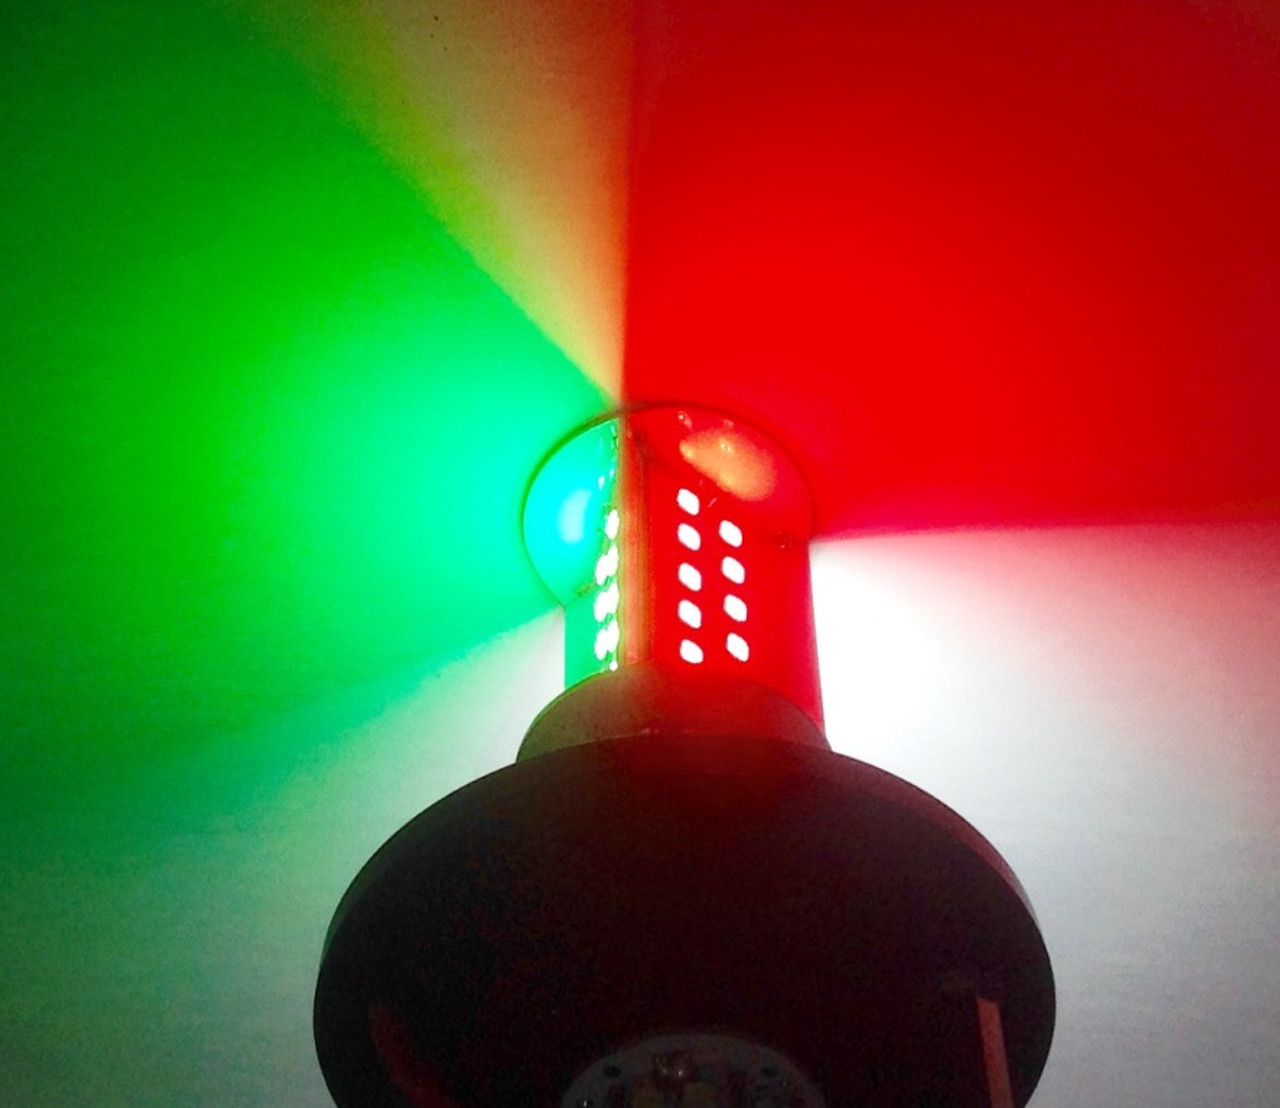 LED Tri-Color with distinct sector separation using panels